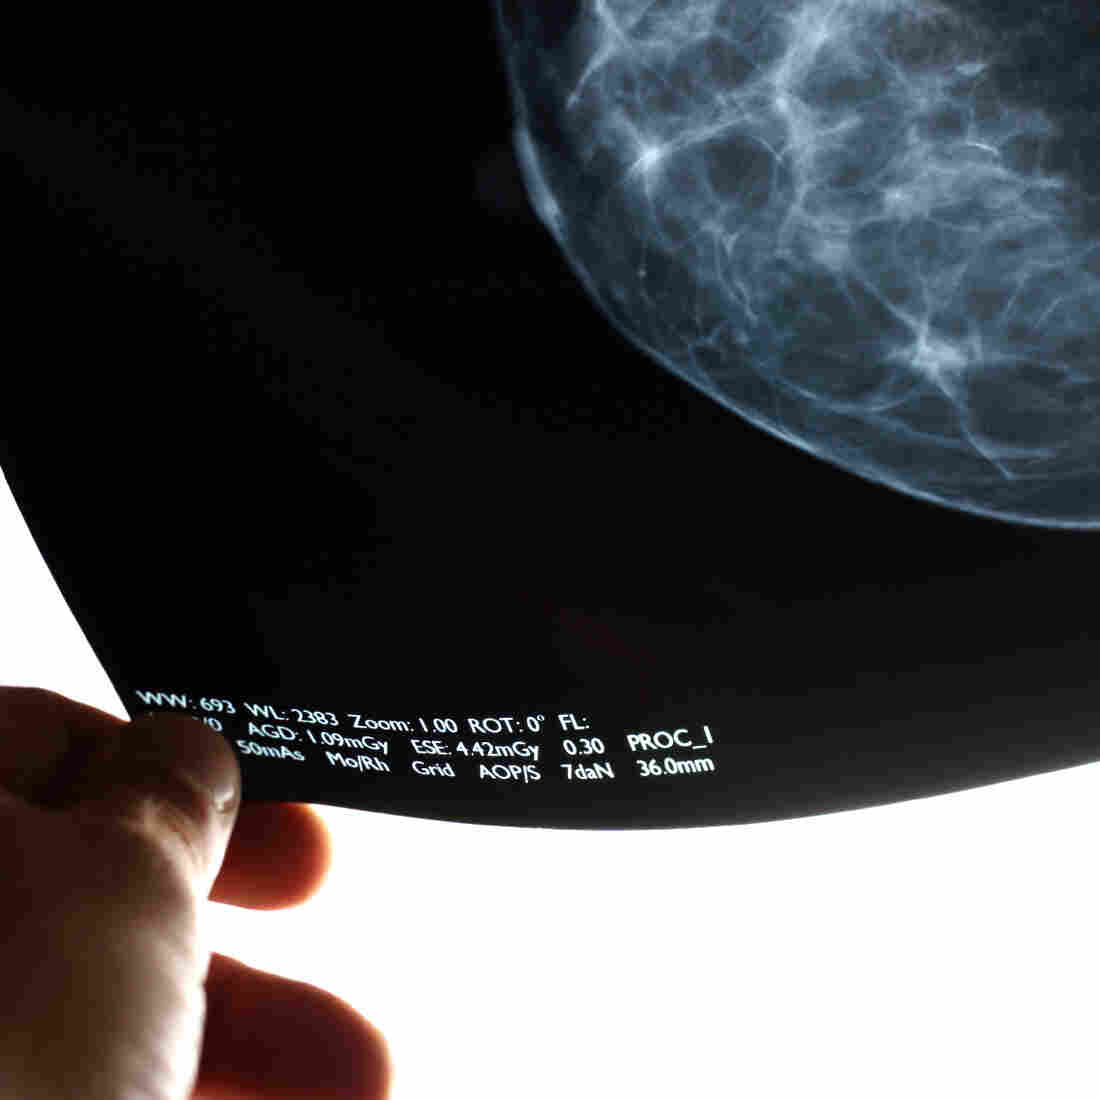 OK, When Am I Supposed To Get A Mammogram?